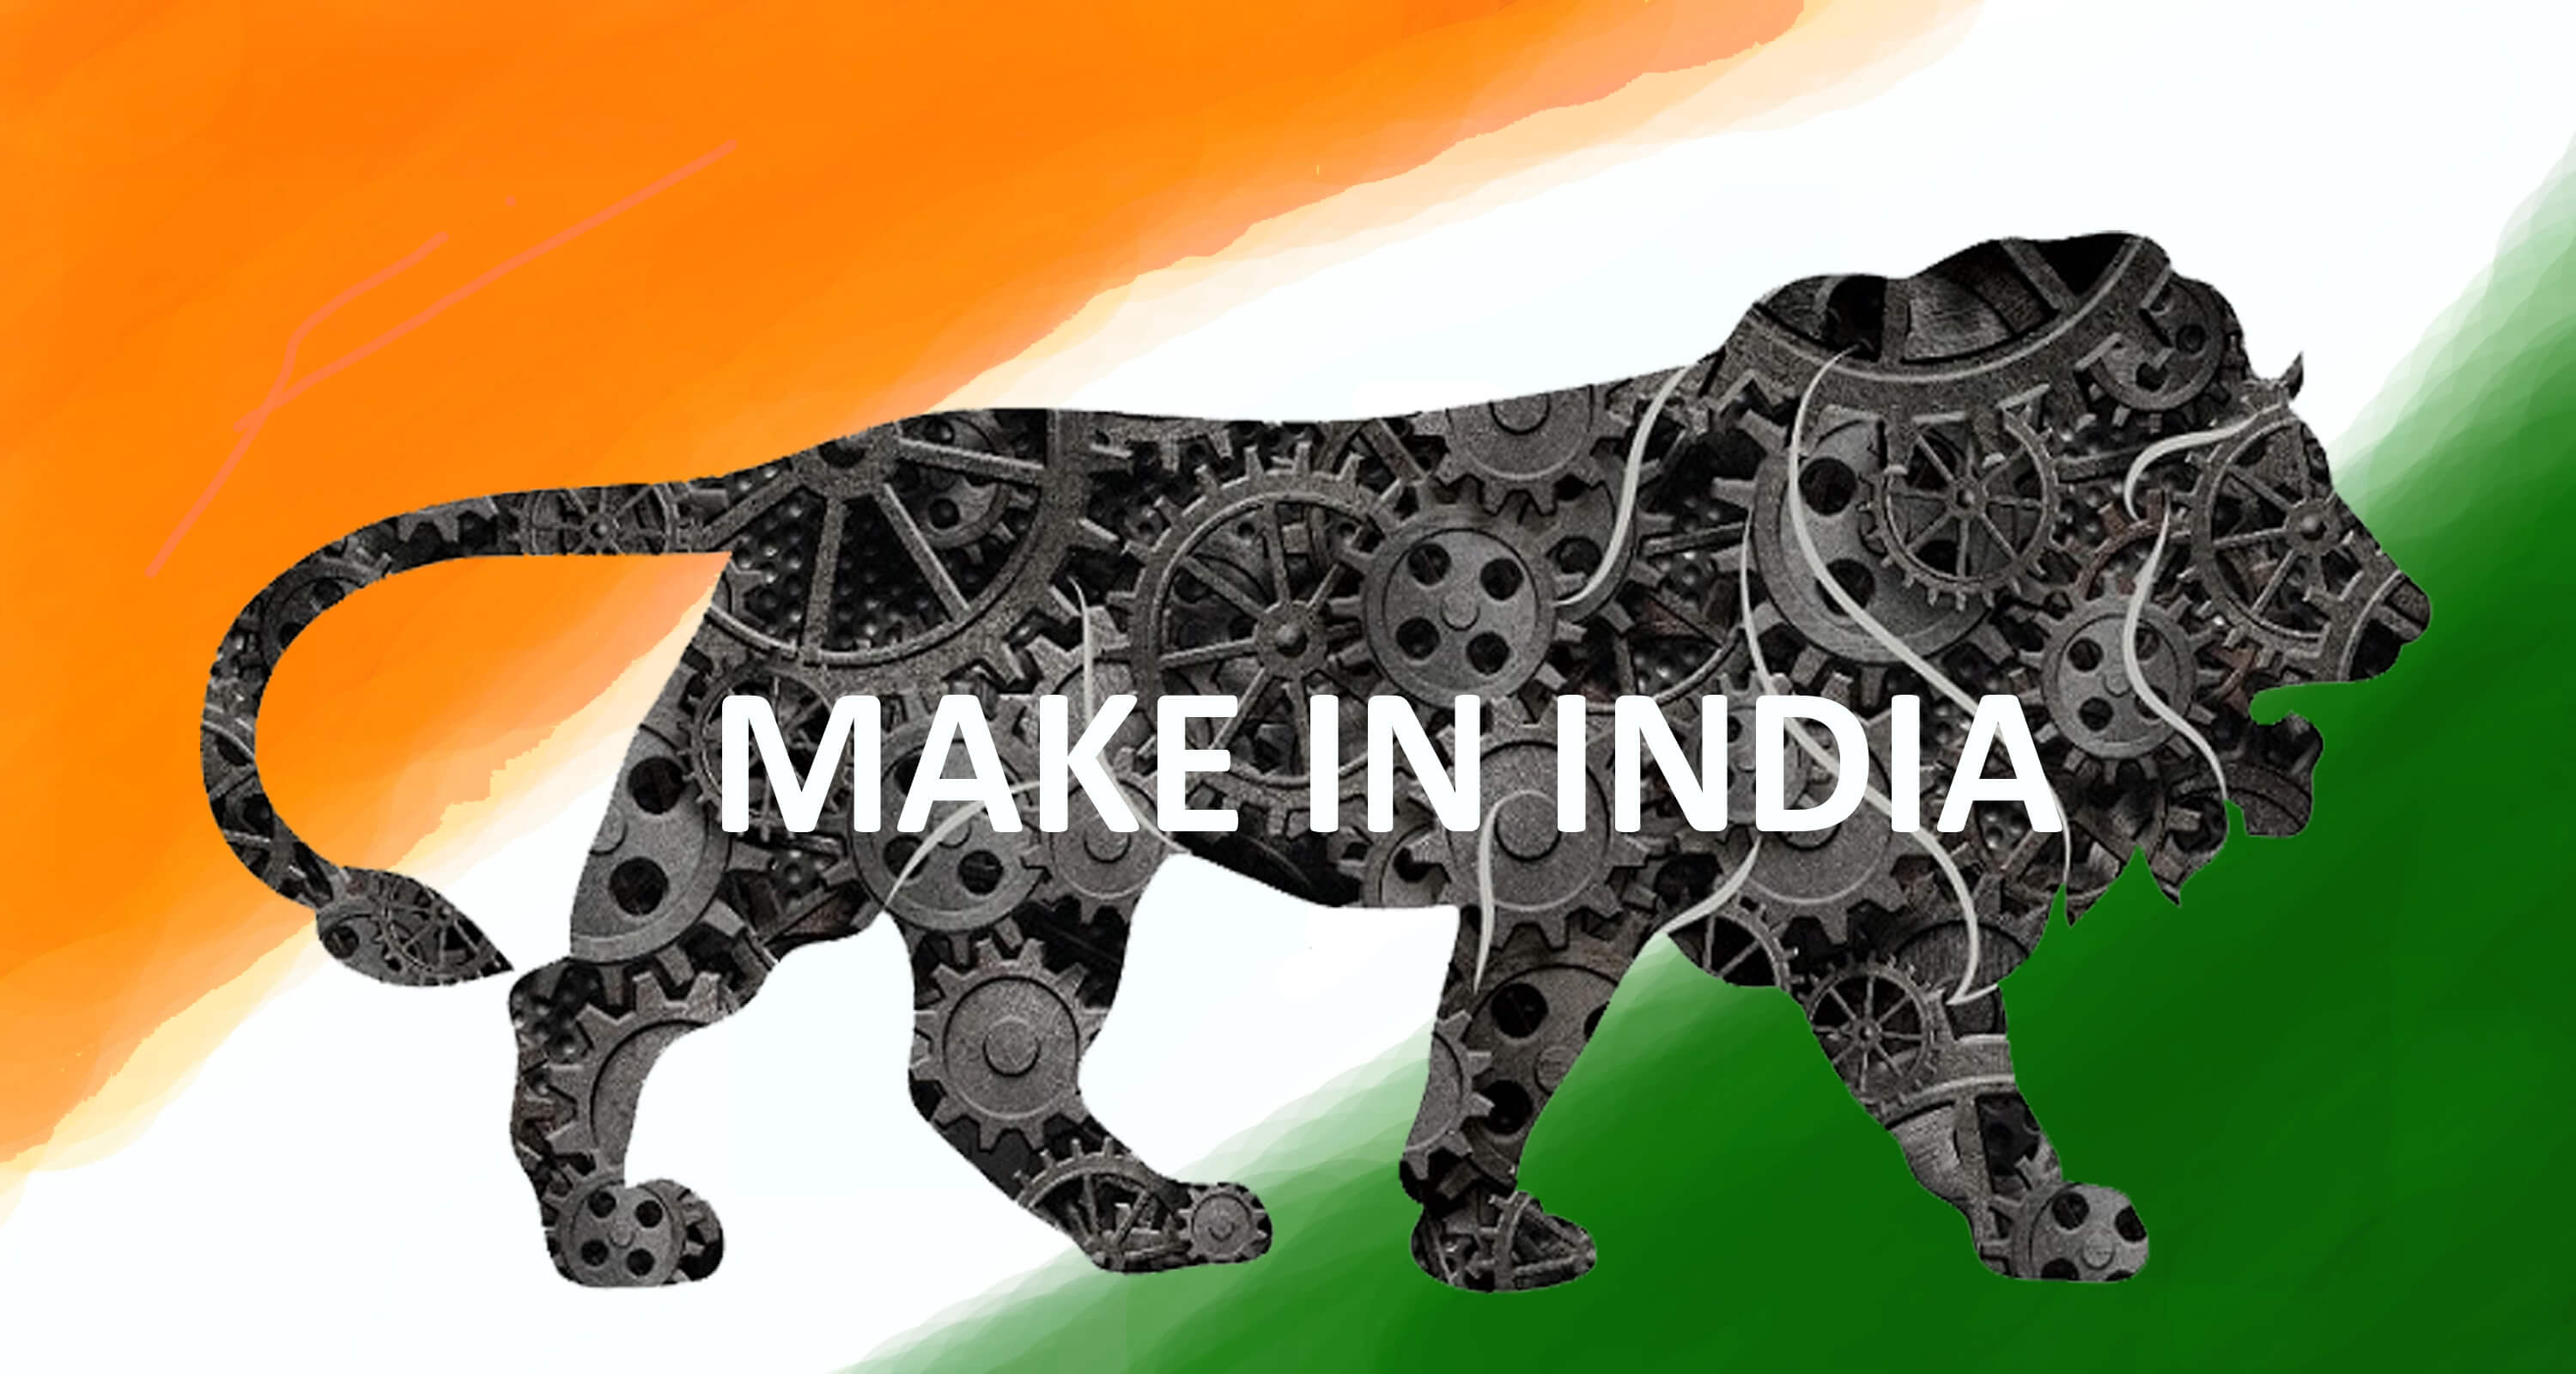 MADE IN INDIA | MADE FOR INDIA